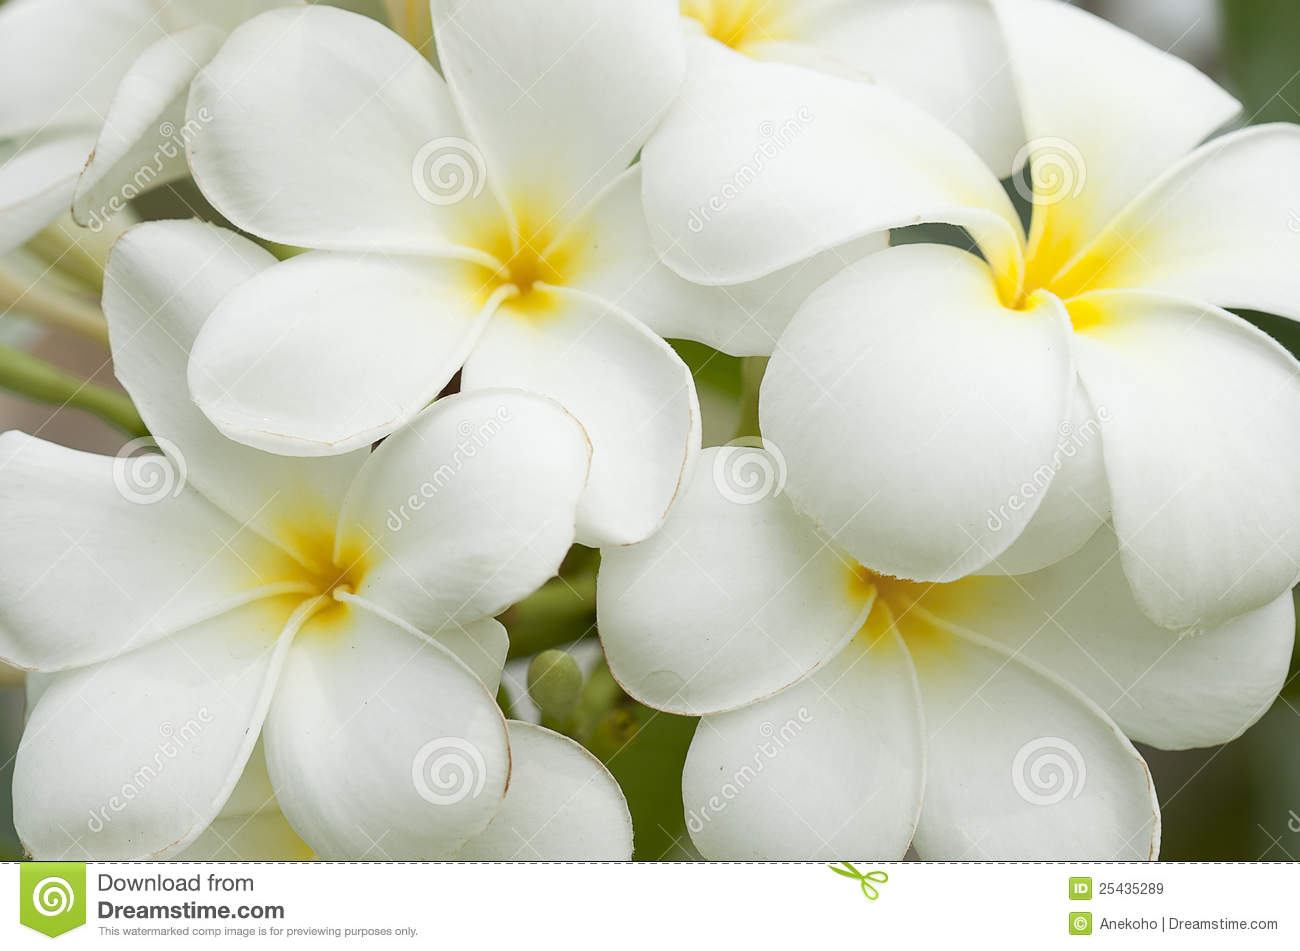 Fiori Gialli E Bianchi.White Yellow Flowers 17 Desktop Wallpaper Hdflowerwallpaper Com